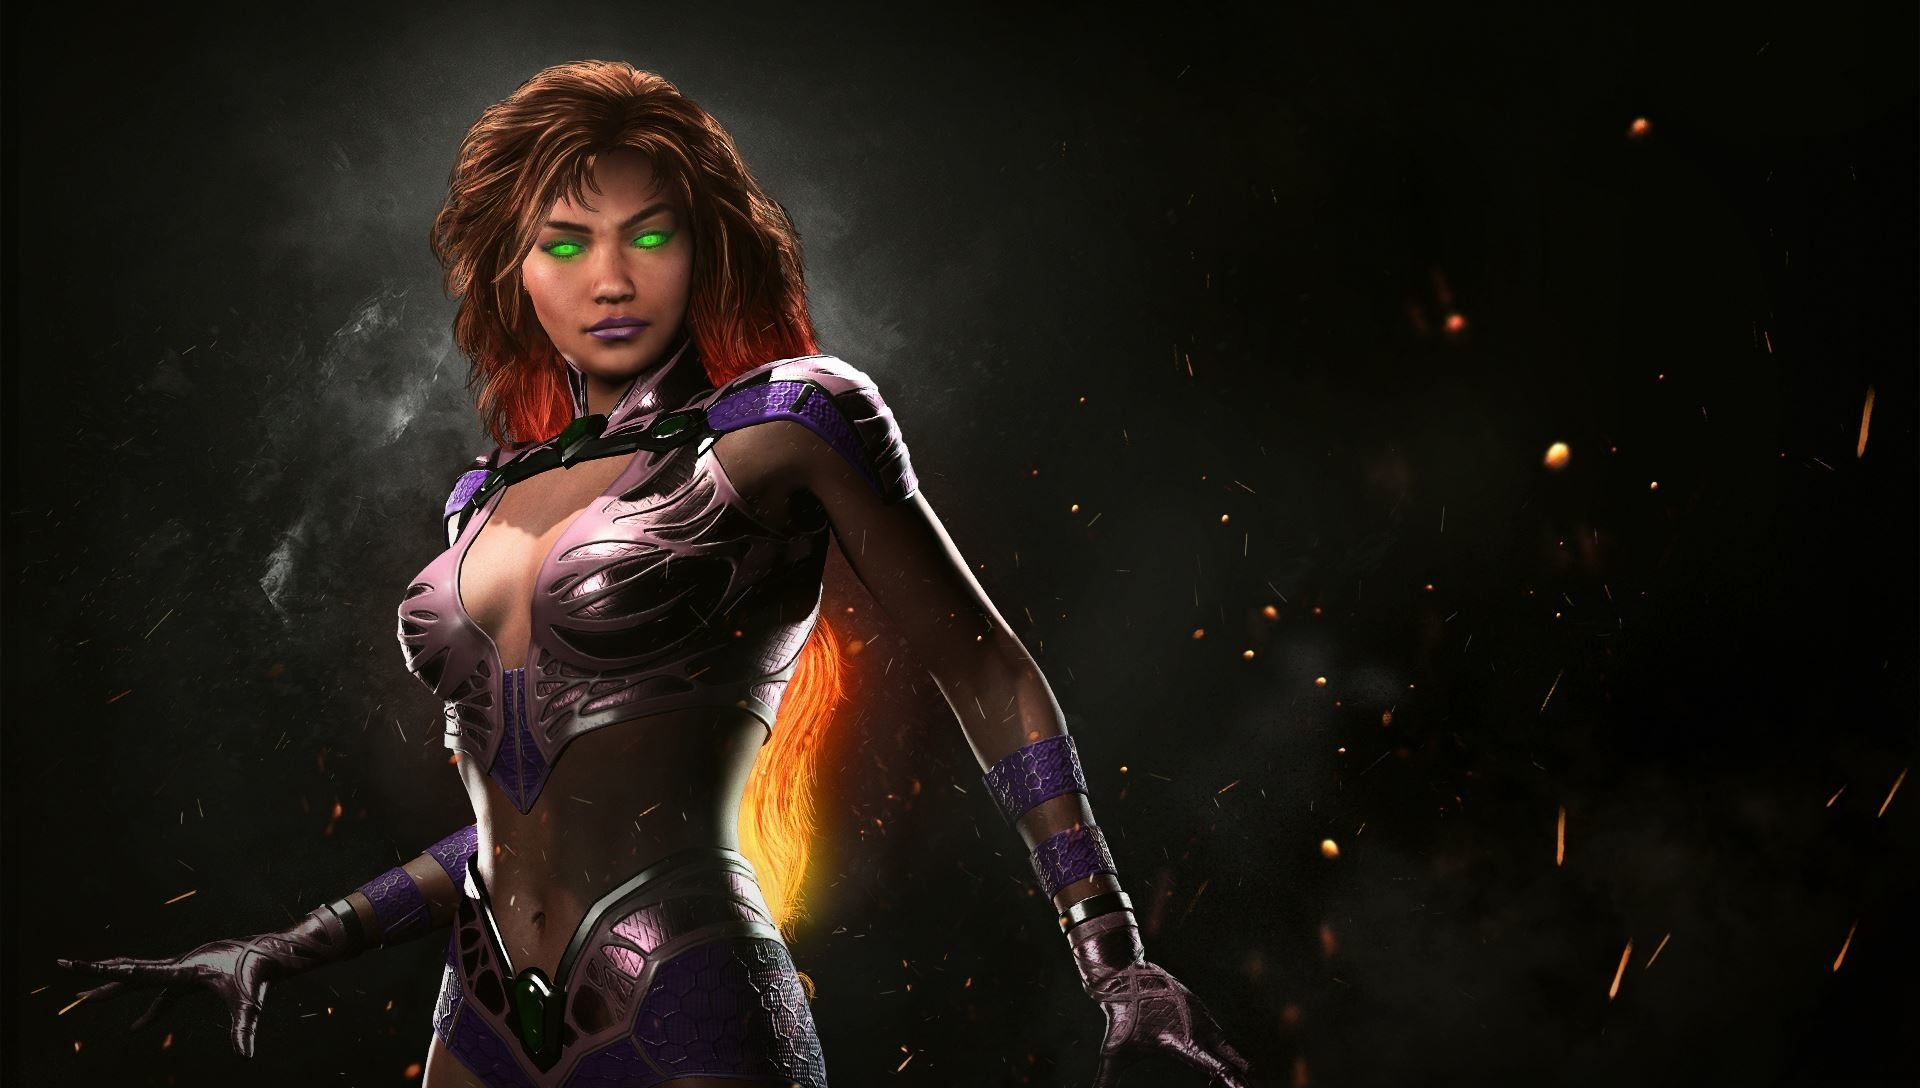 starfire full hd wallpaper and background image